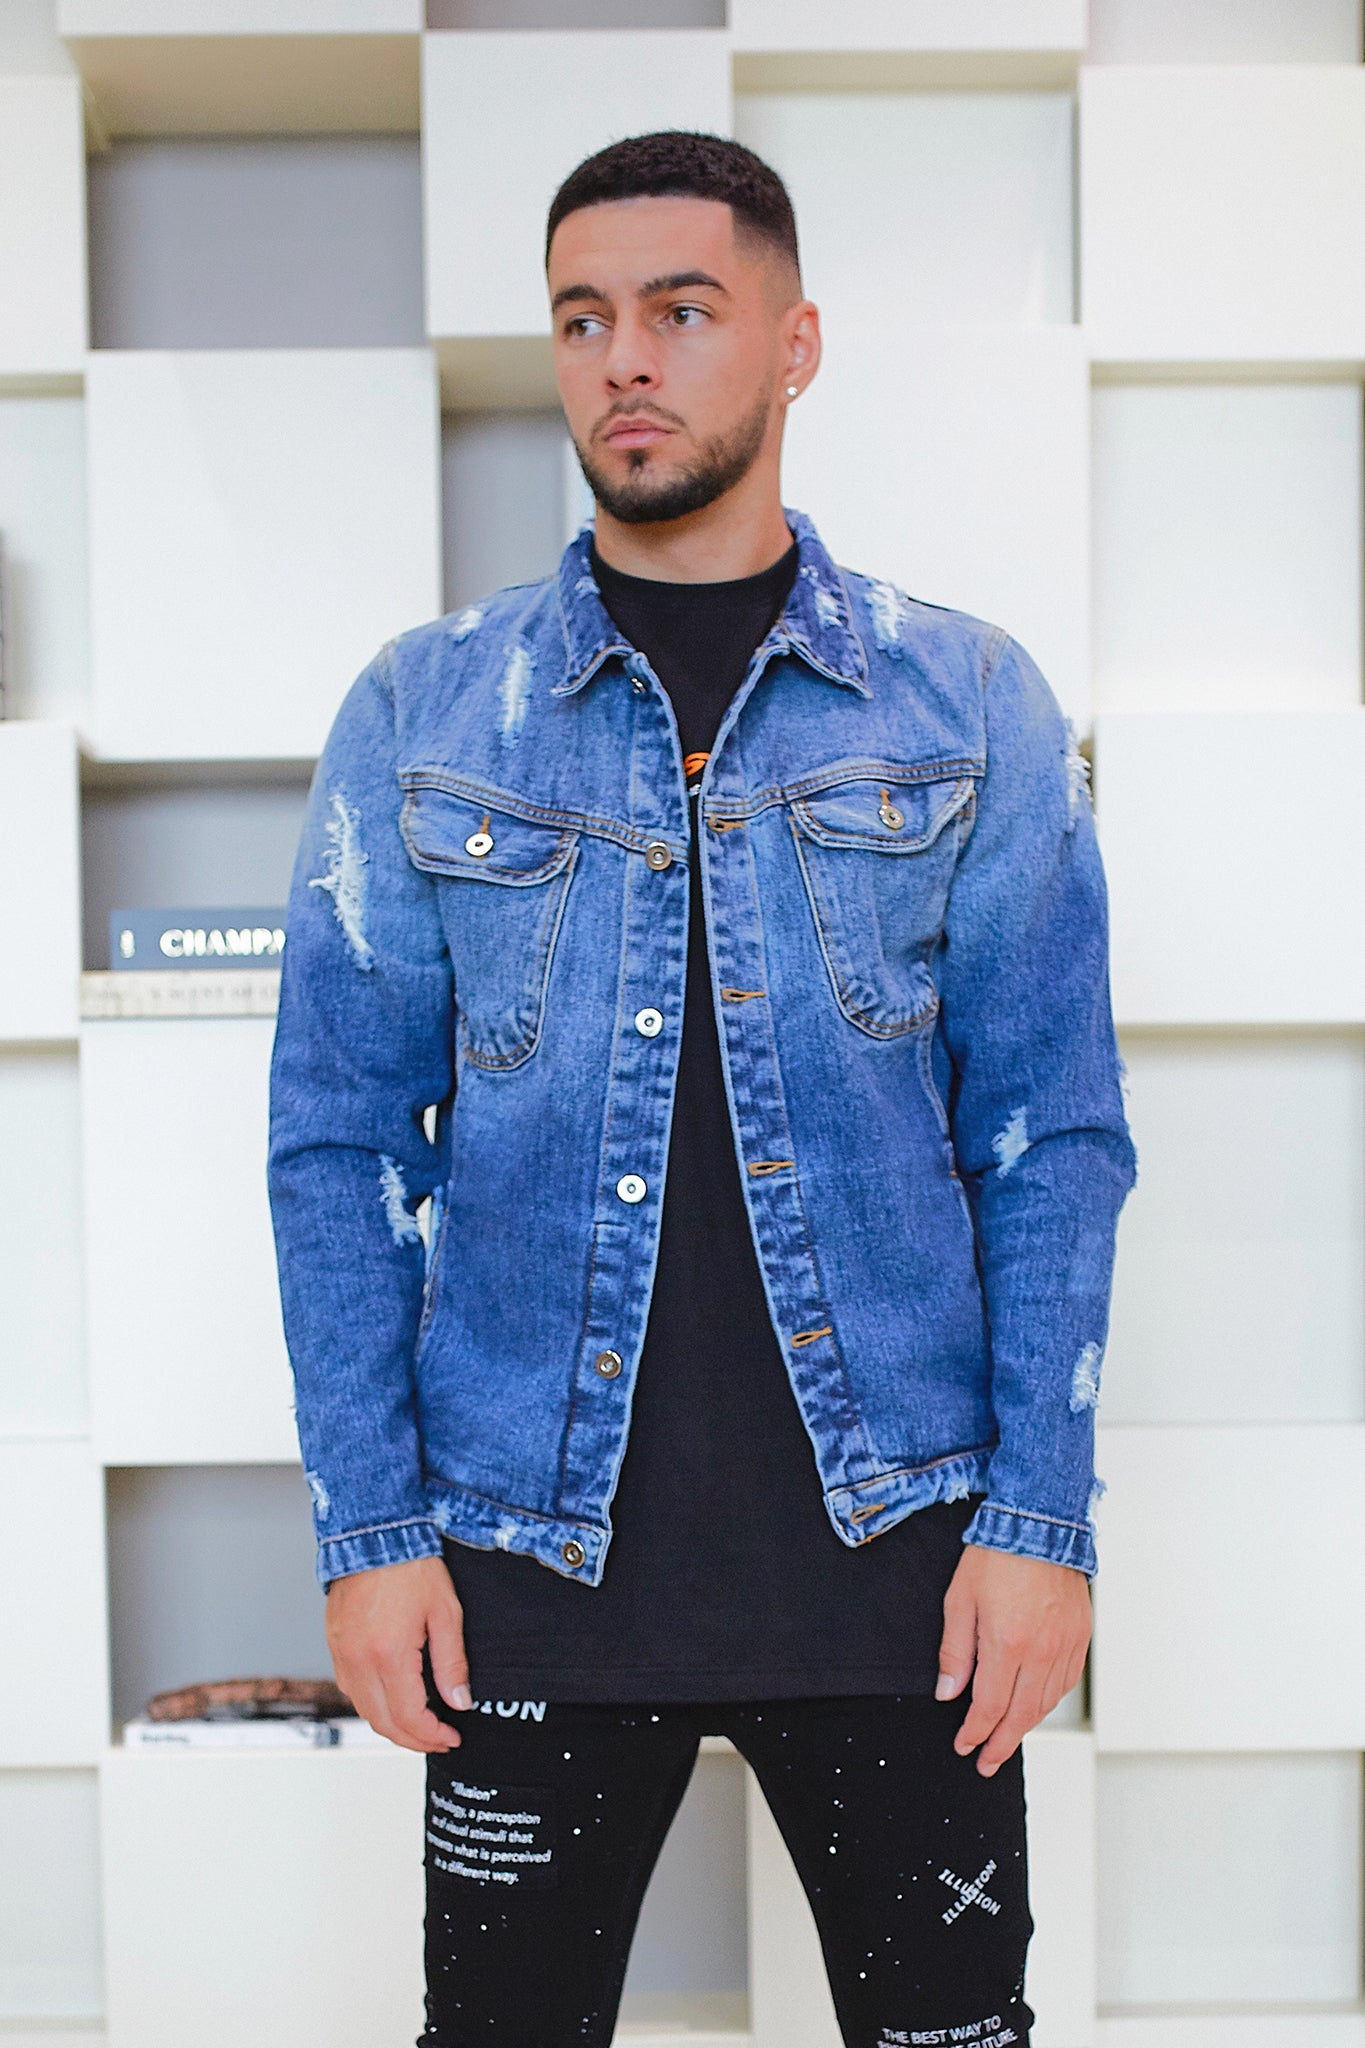 Illusion Denim Jacket - Illusion Attire